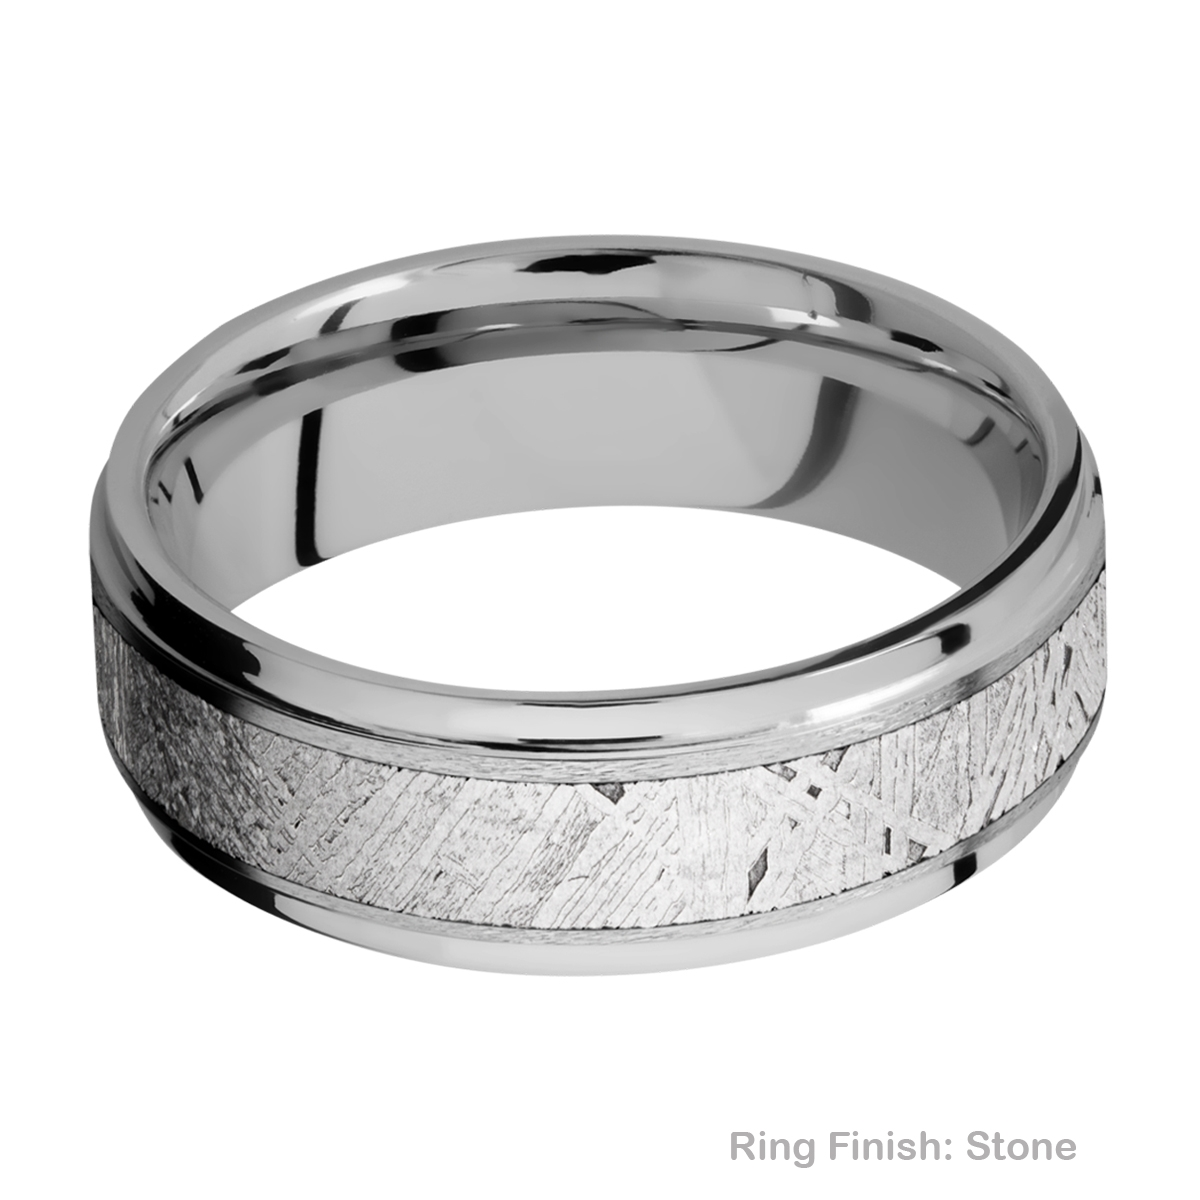 Lashbrook 7FGE14/METEORITE Titanium Wedding Ring or Band Alternative View 6